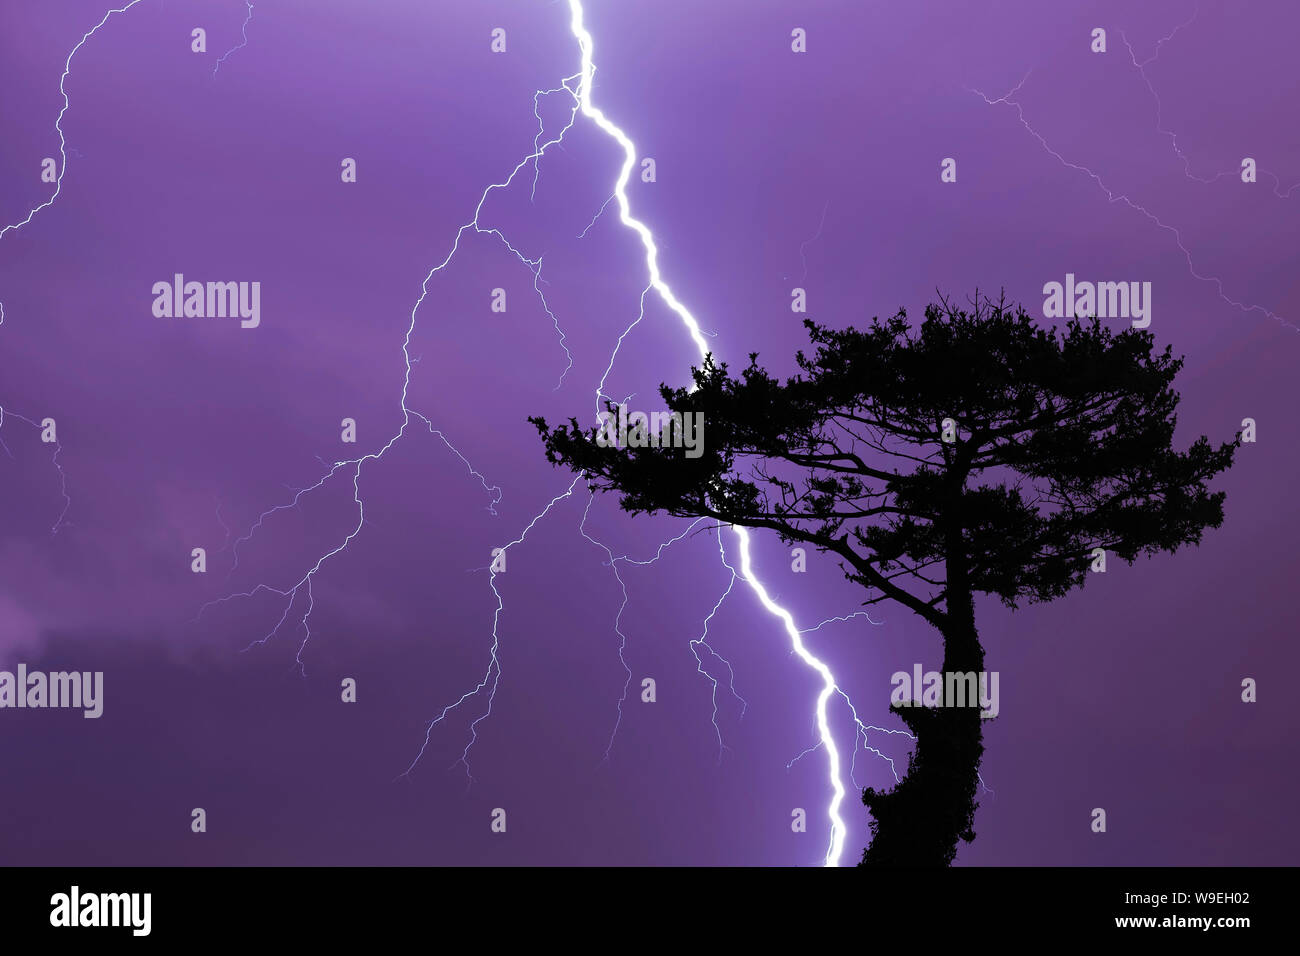 Tree and lightning bolt and storm, lightning bolt and thunderstorm at night Stock Photo